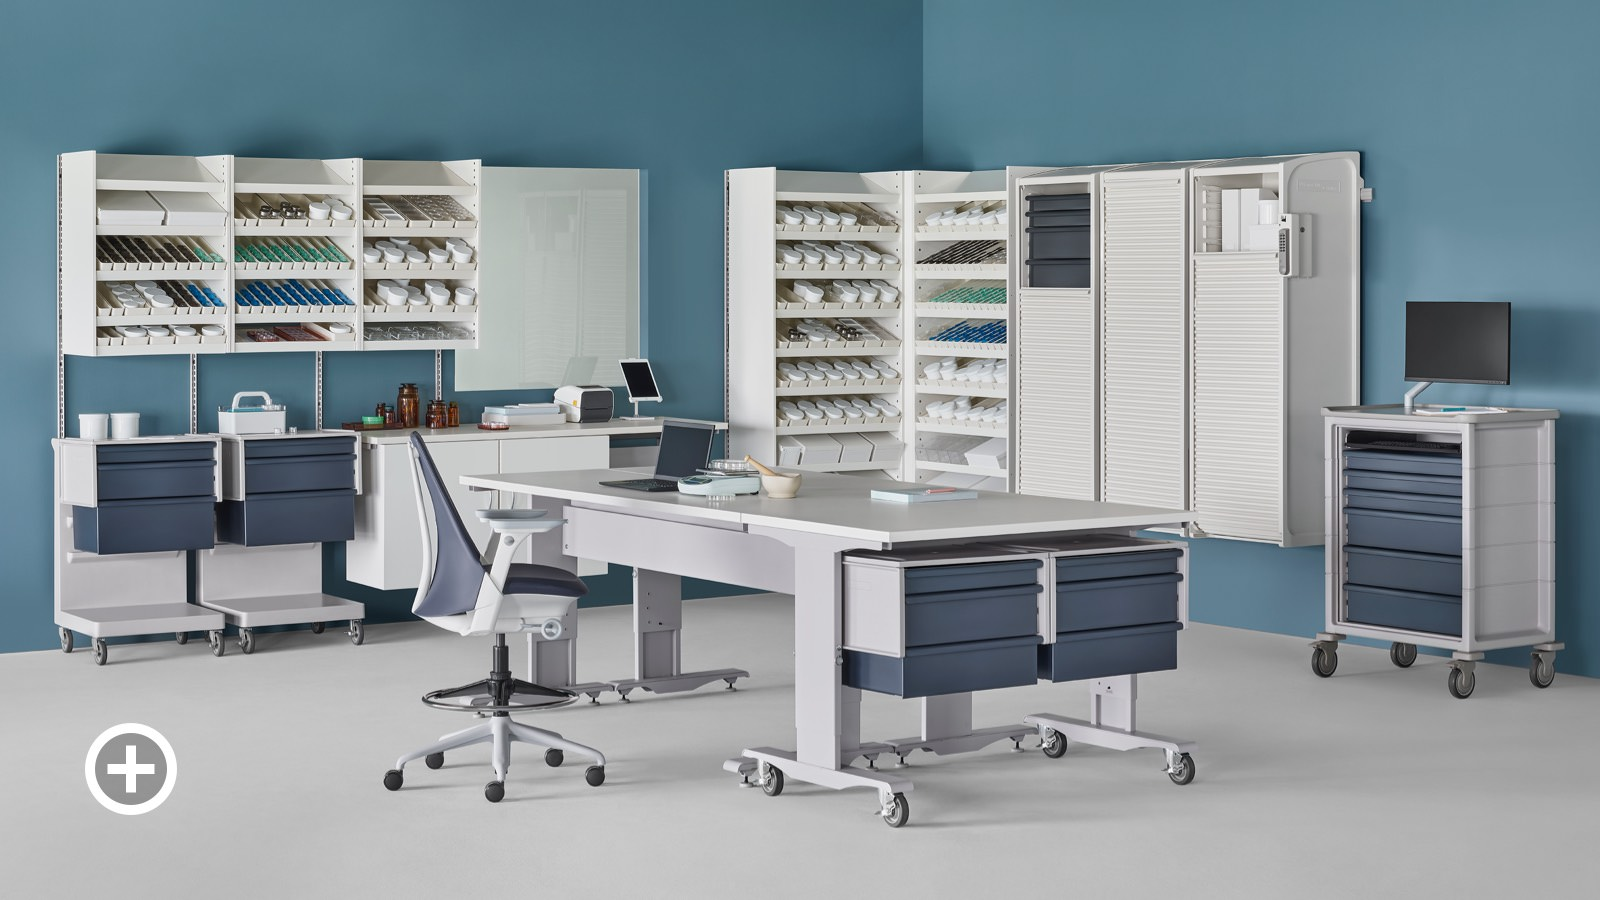 A pharmacy containing a white Co/Struc System of dispensing shelves, lockers, process tables, L Carts with blue drawers, a technology cart with blue drawers and a Sayl Stool.